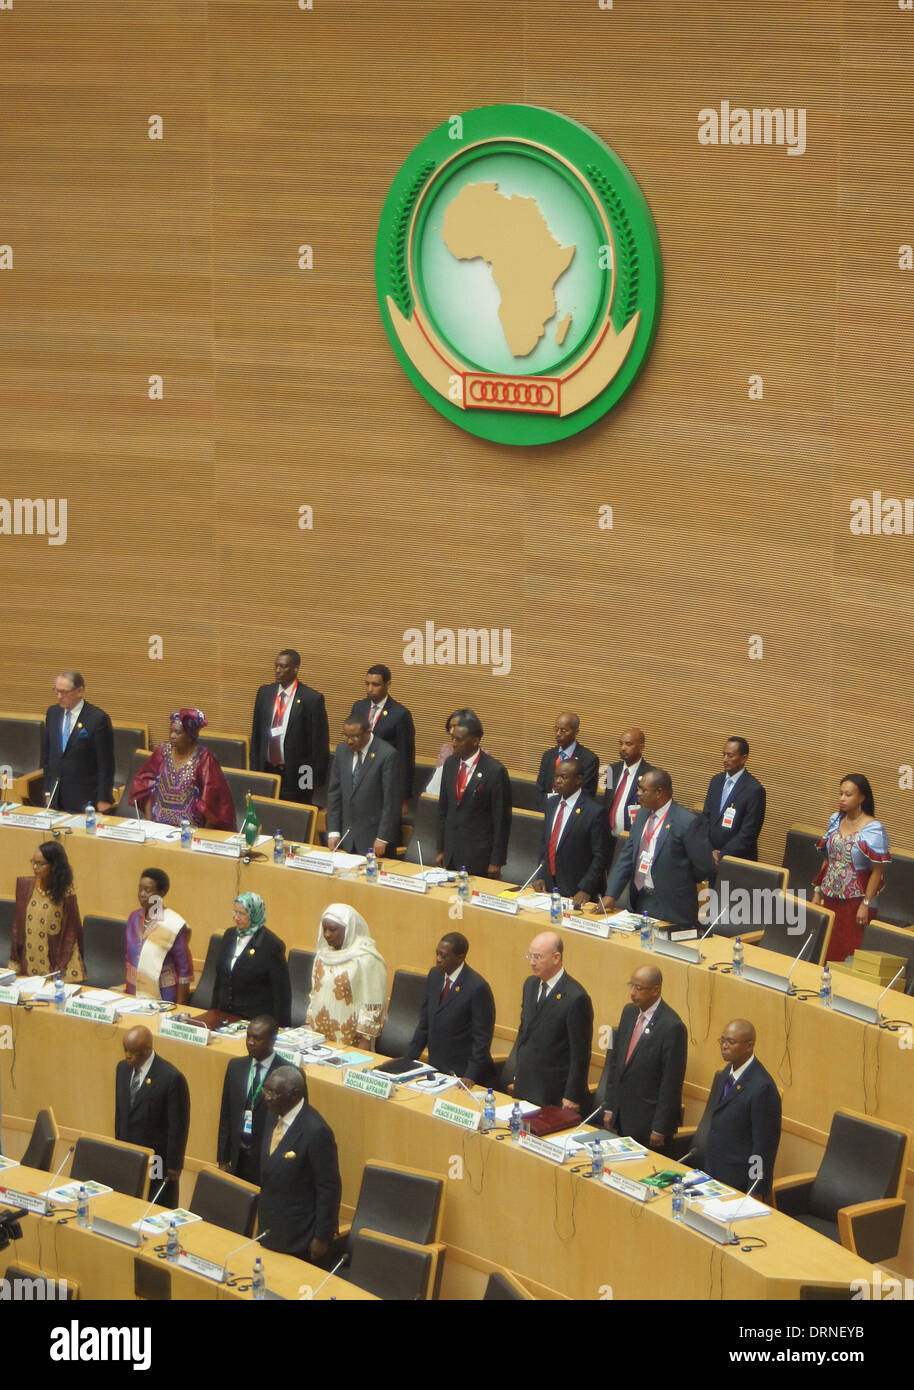 Addis Ababa, Ethiopia. 30th Jan, 2014. Delegates commemorate Nelson Mandela at the beginning of the African Union Stock Photo